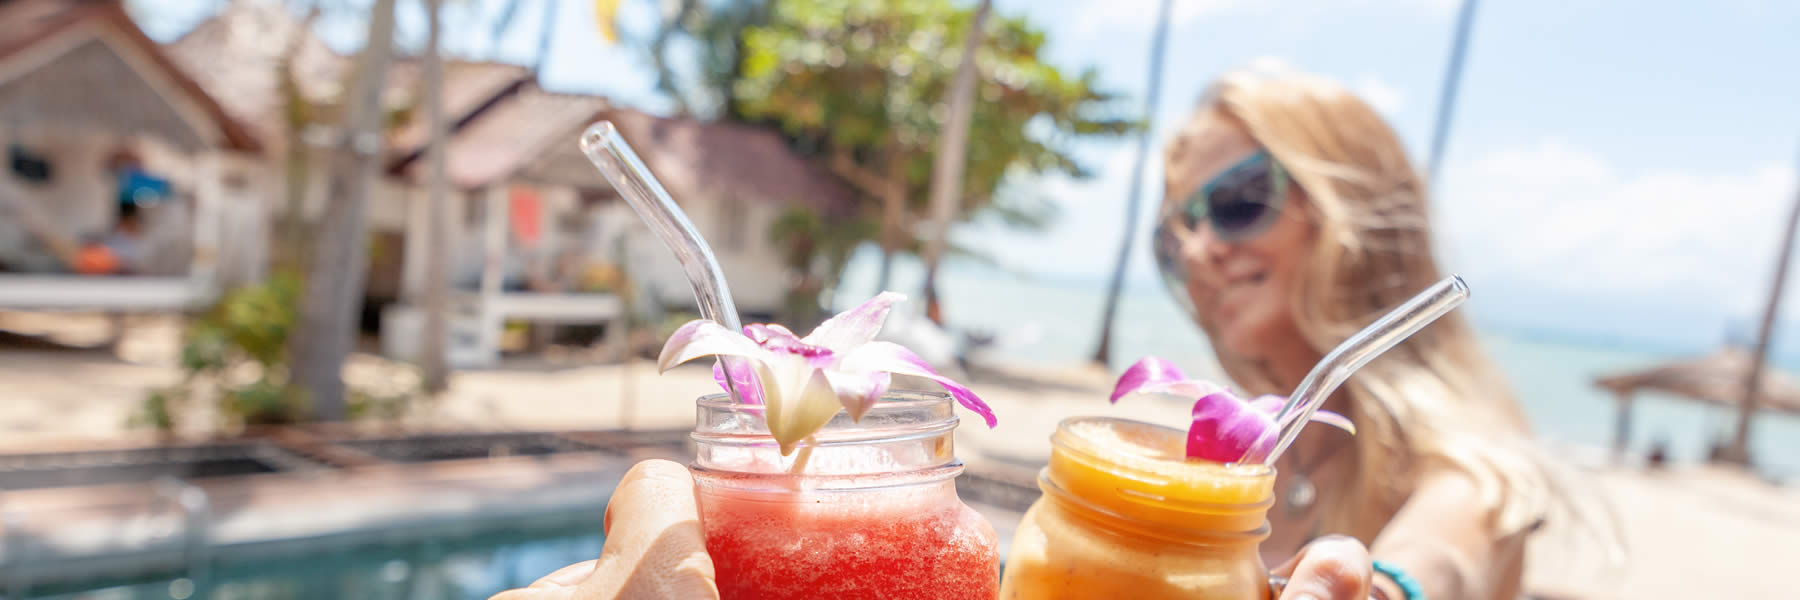 So many great reasons to book a vacation getaway with Mode Travel Agency.